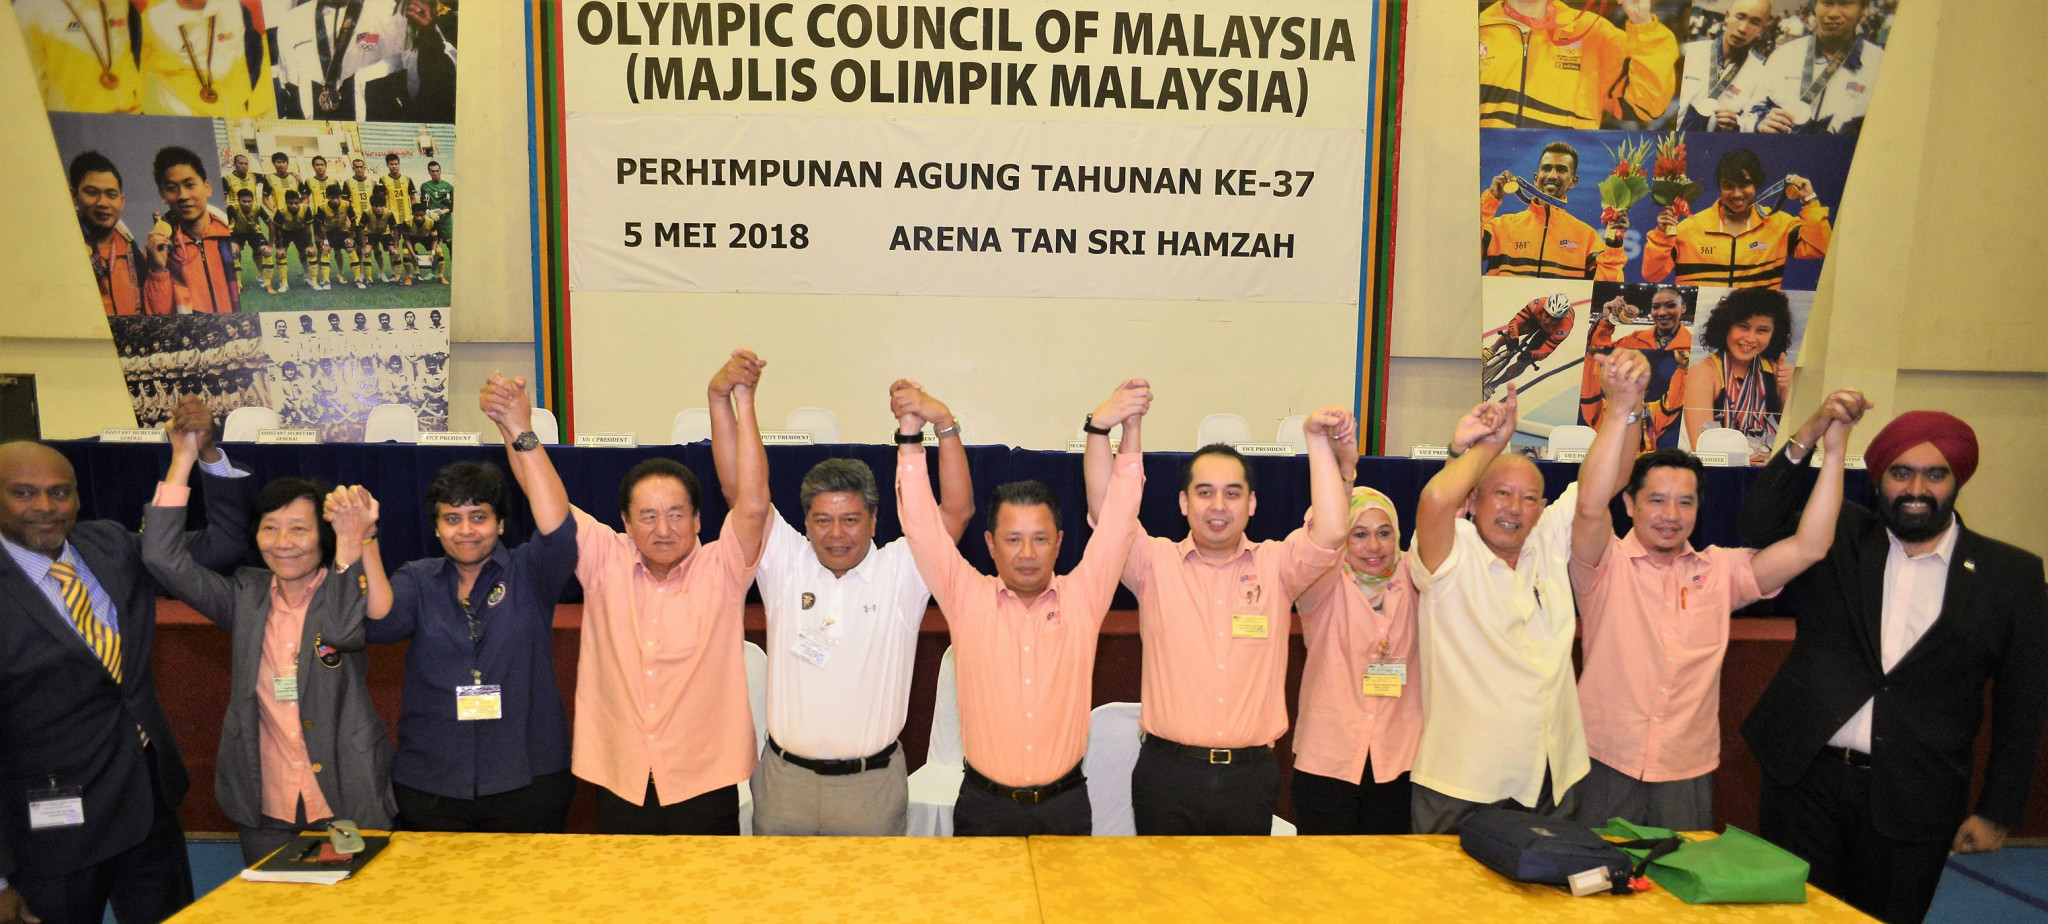 Newly elected Olympic Council of Malaysia officials celebrate following their election today ©Olympic Council of Malaysia/Facebook